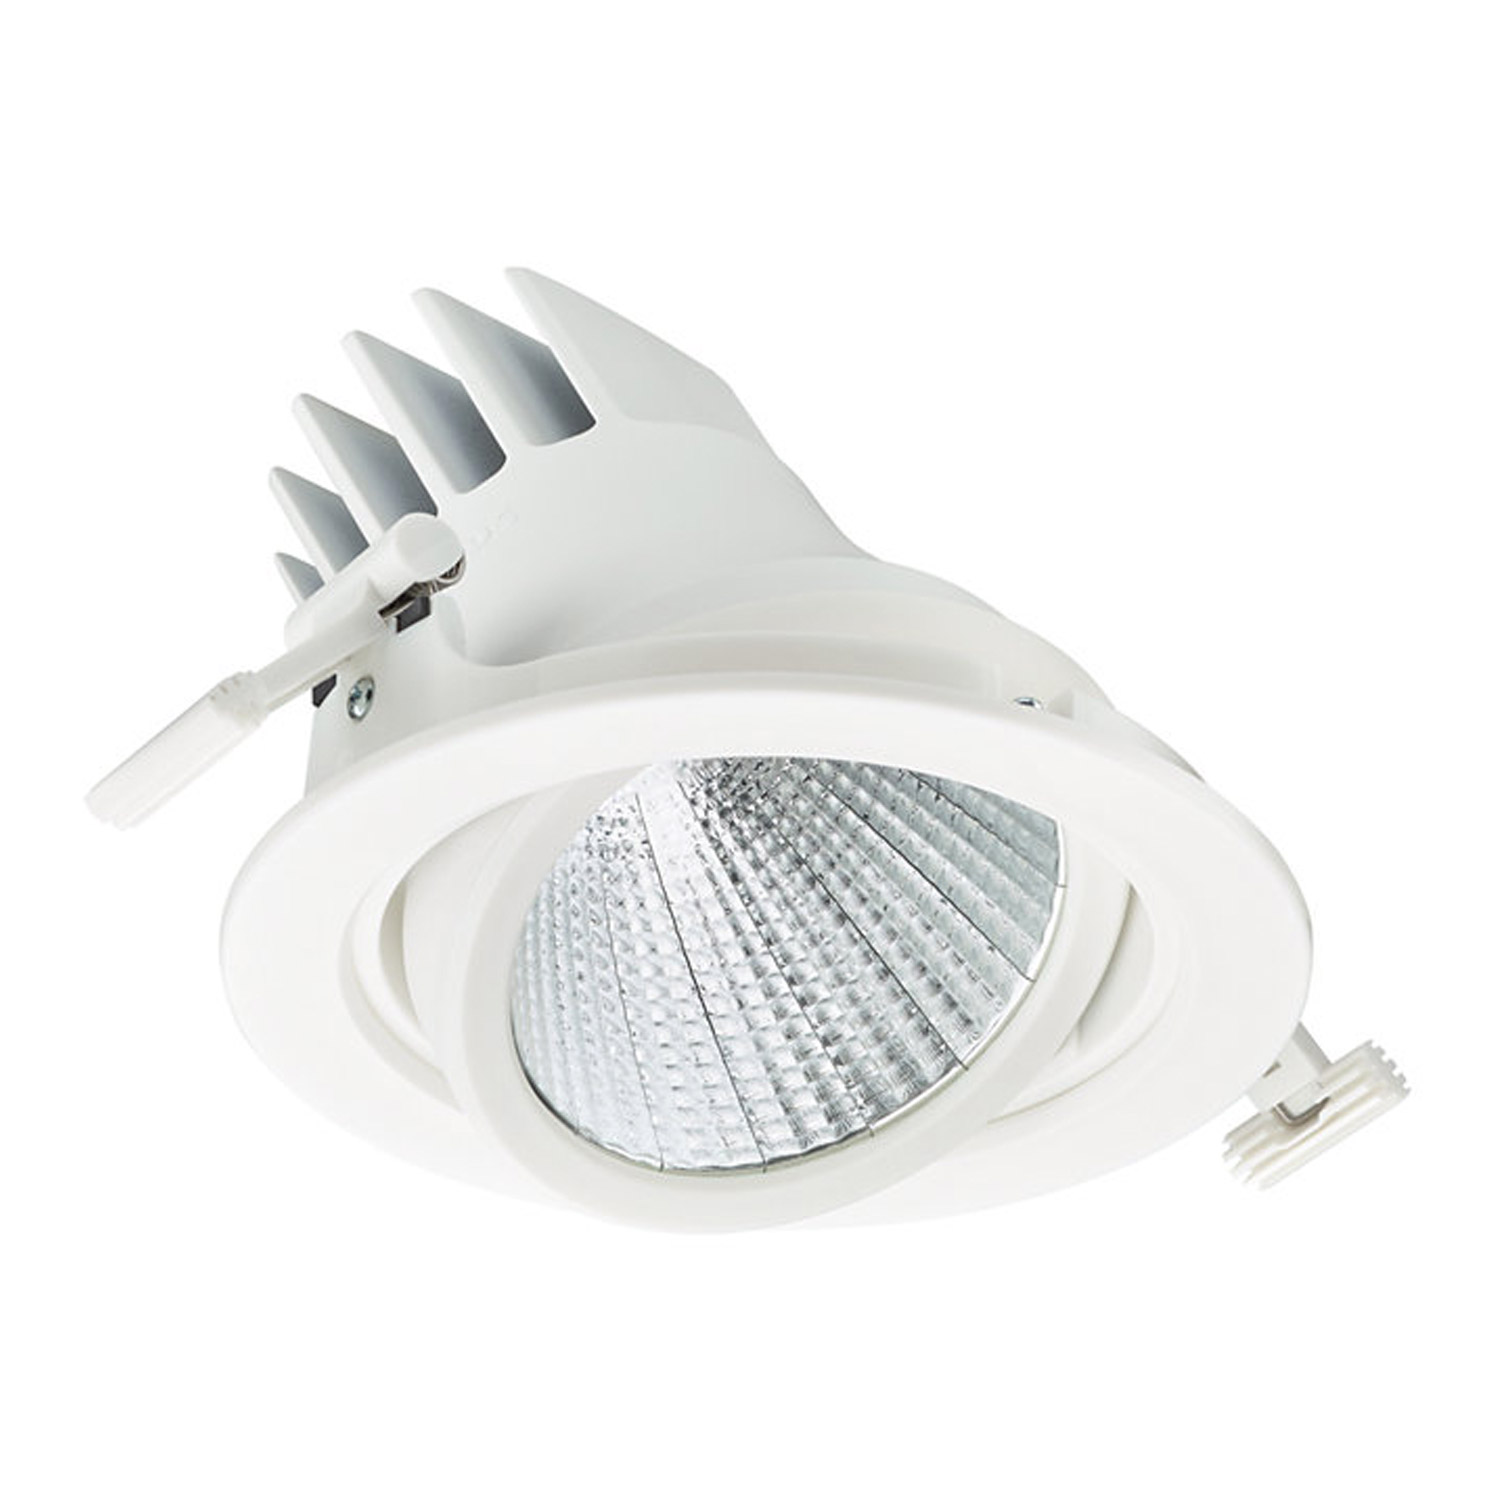 Philips LuxSpace Accent Performance LED Spot RS781B 28W 840 4000lm - Cool White